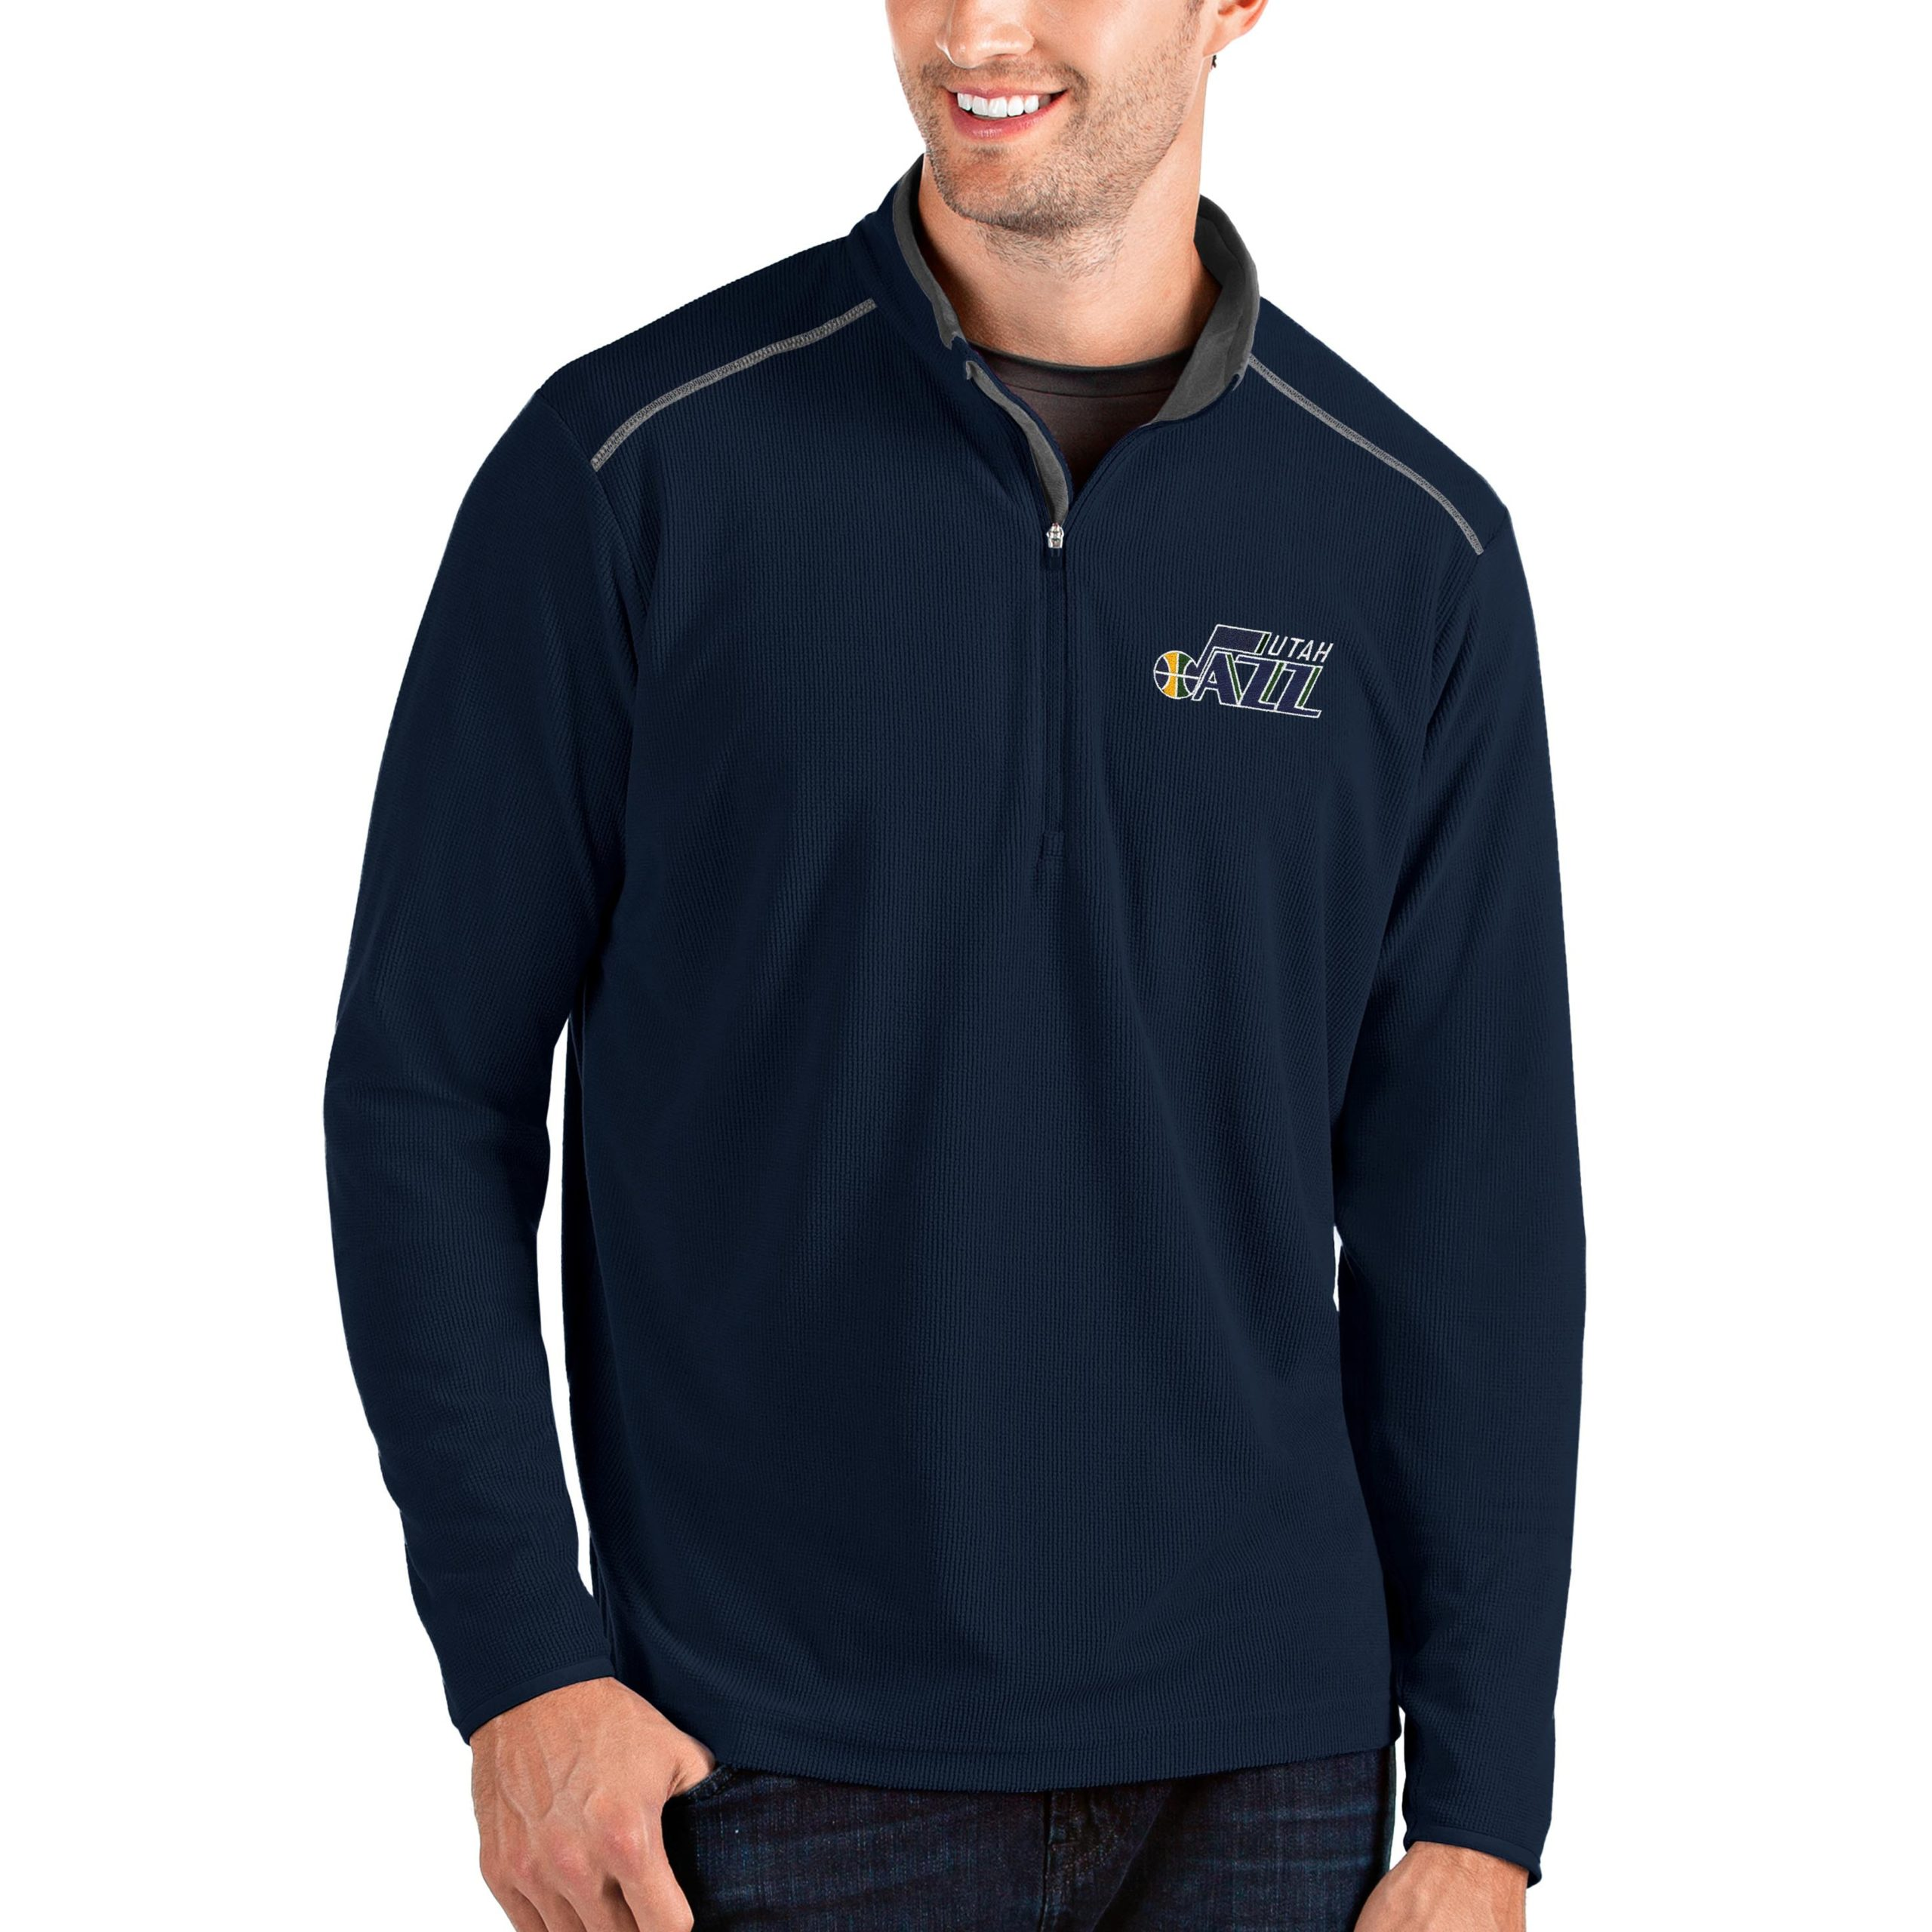 Utah Jazz Antigua Big & Tall Glacier Quarter-Zip Pullover Jacket - Navy/Gray